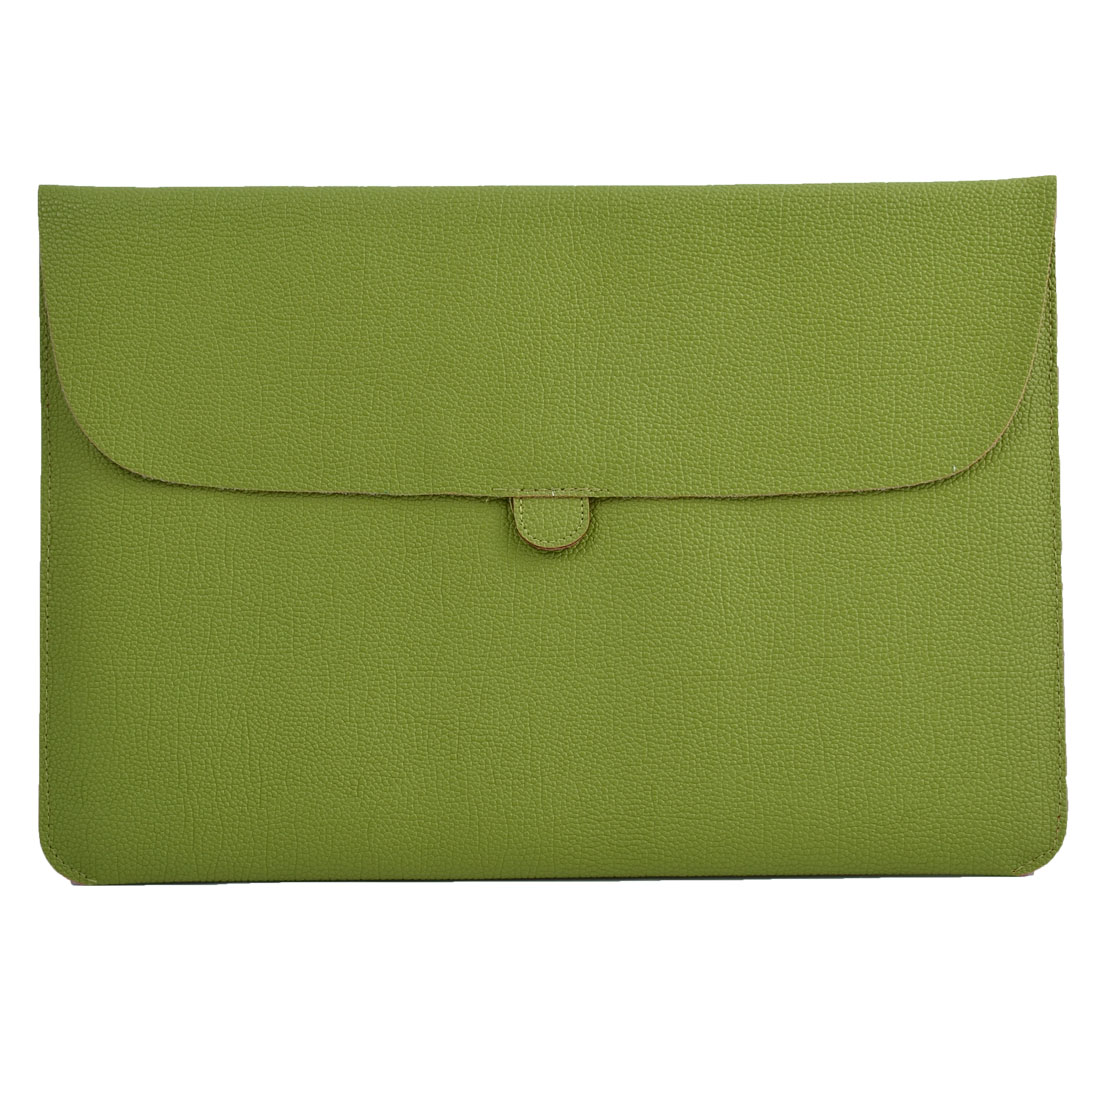 """Carrying Laptop Case Pouch Envelope Shape Tablet Sleeve Bag Lawn Green for Macbook 13.3"""""""